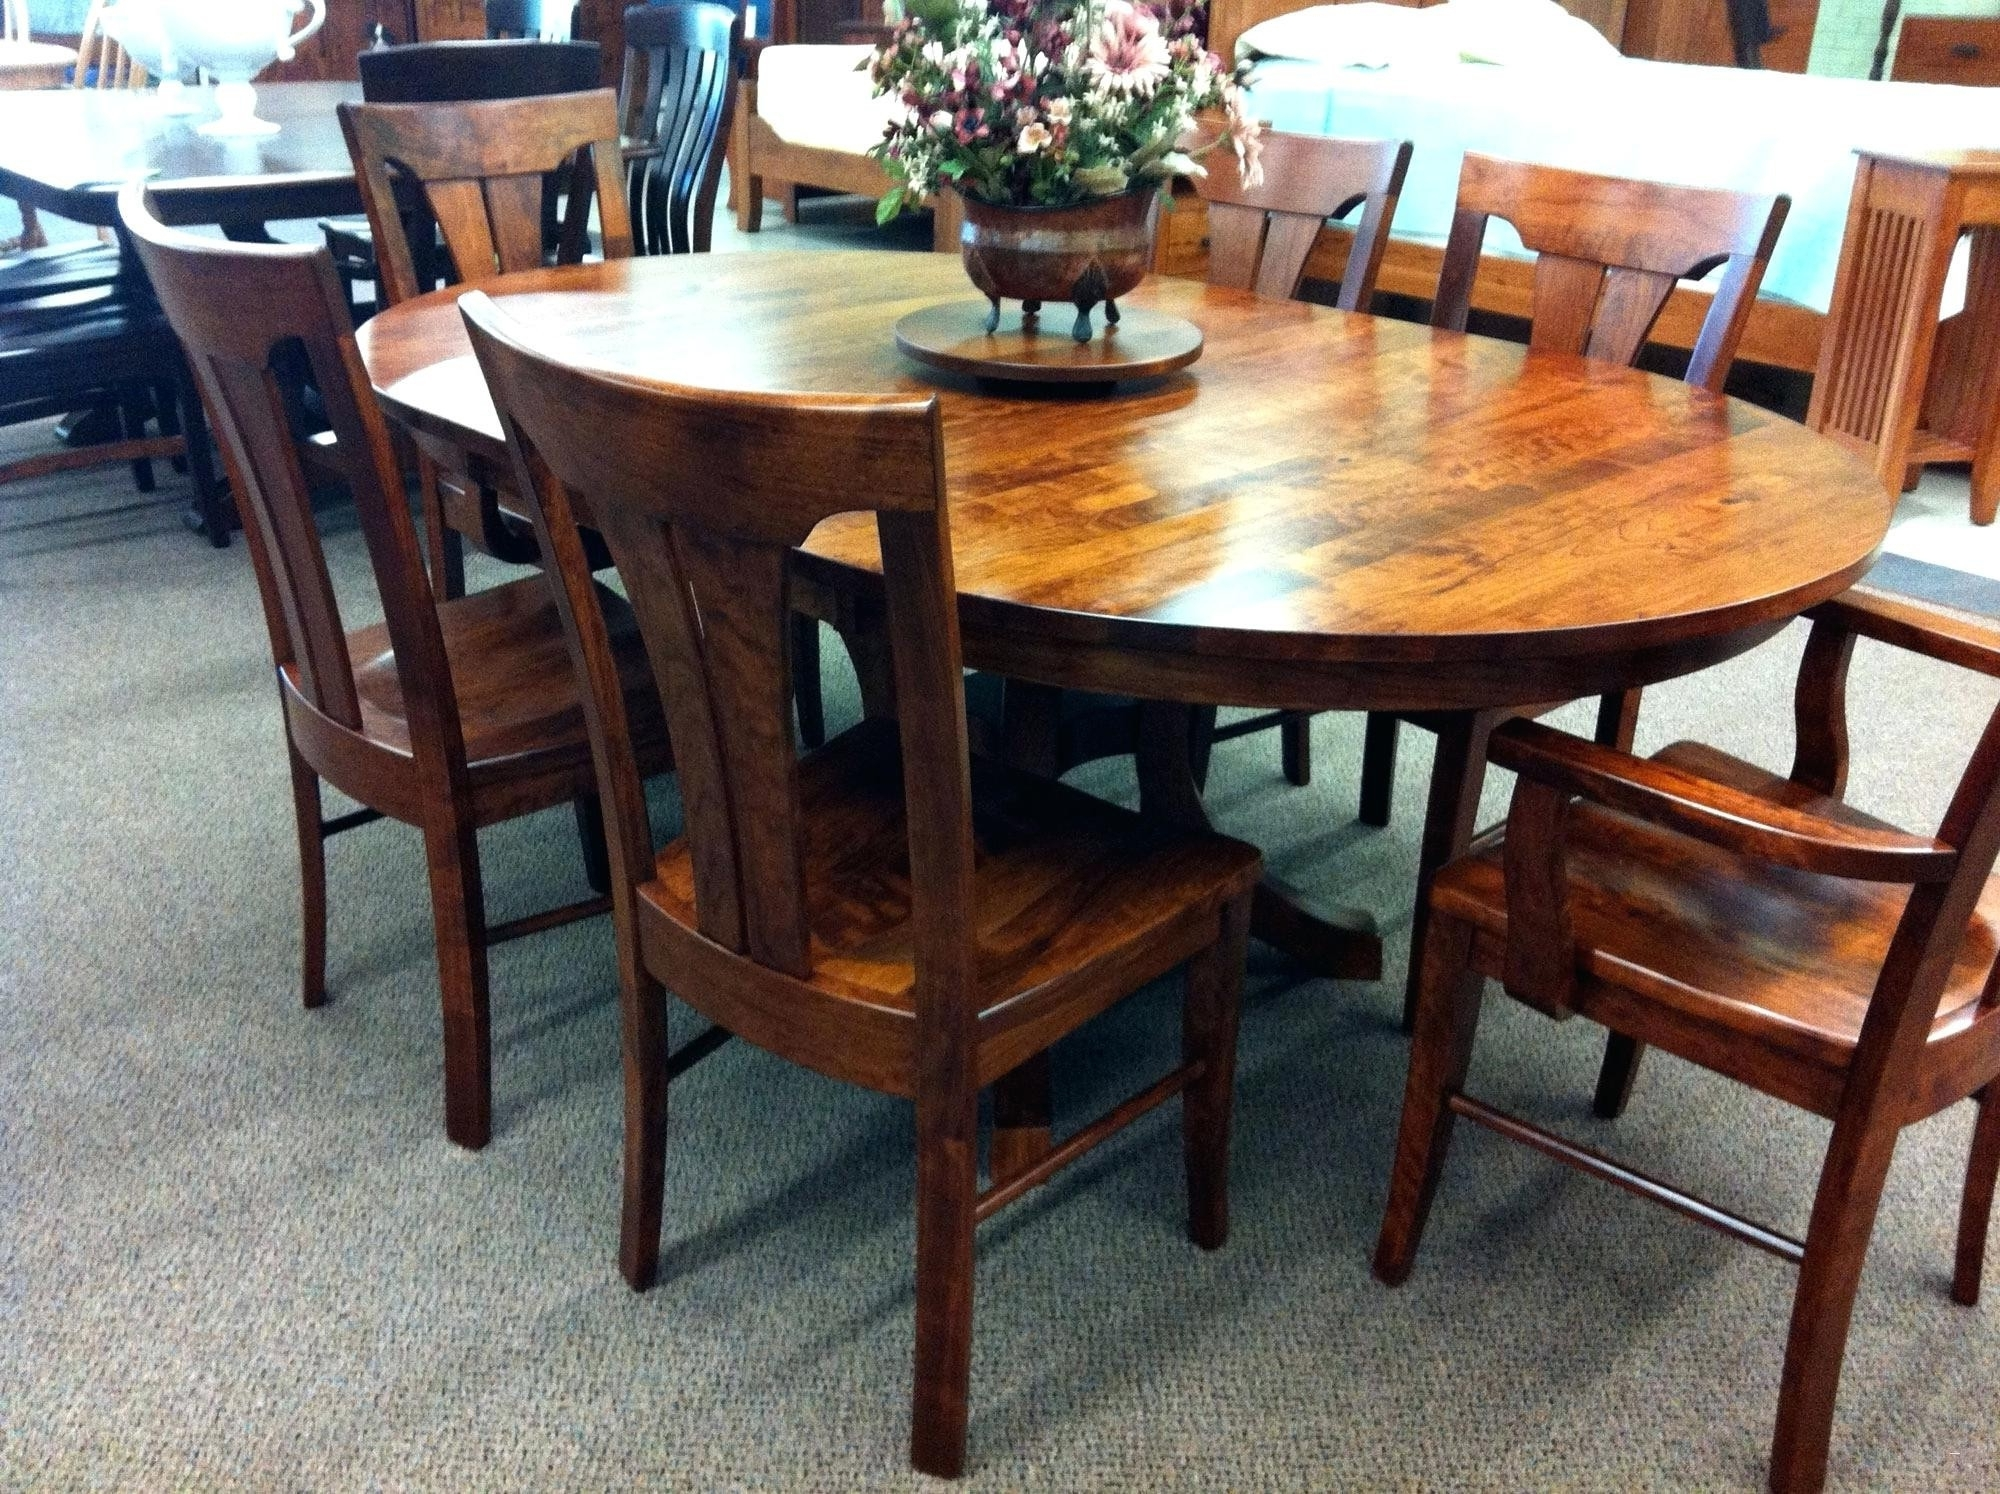 The 24 Elegant Solid Oak Round Dining Table 6 Chairs Within Well Liked Wood Dining Tables And 6 Chairs (View 22 of 25)